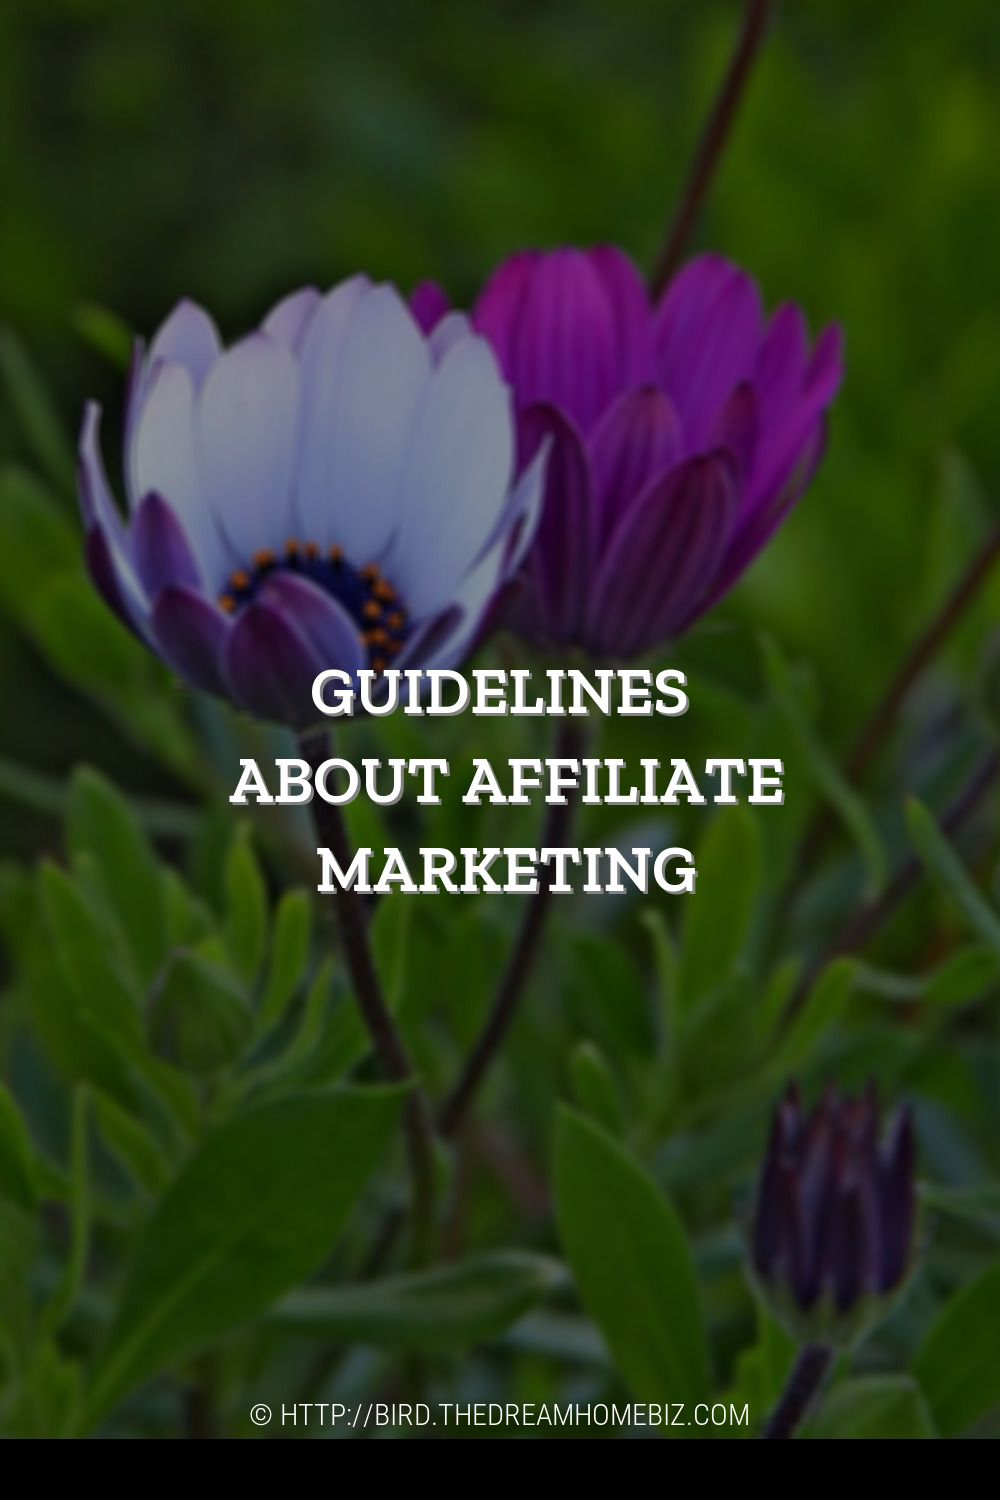 9 Growing Affiliate Marketing Trends To Check Out In 2020